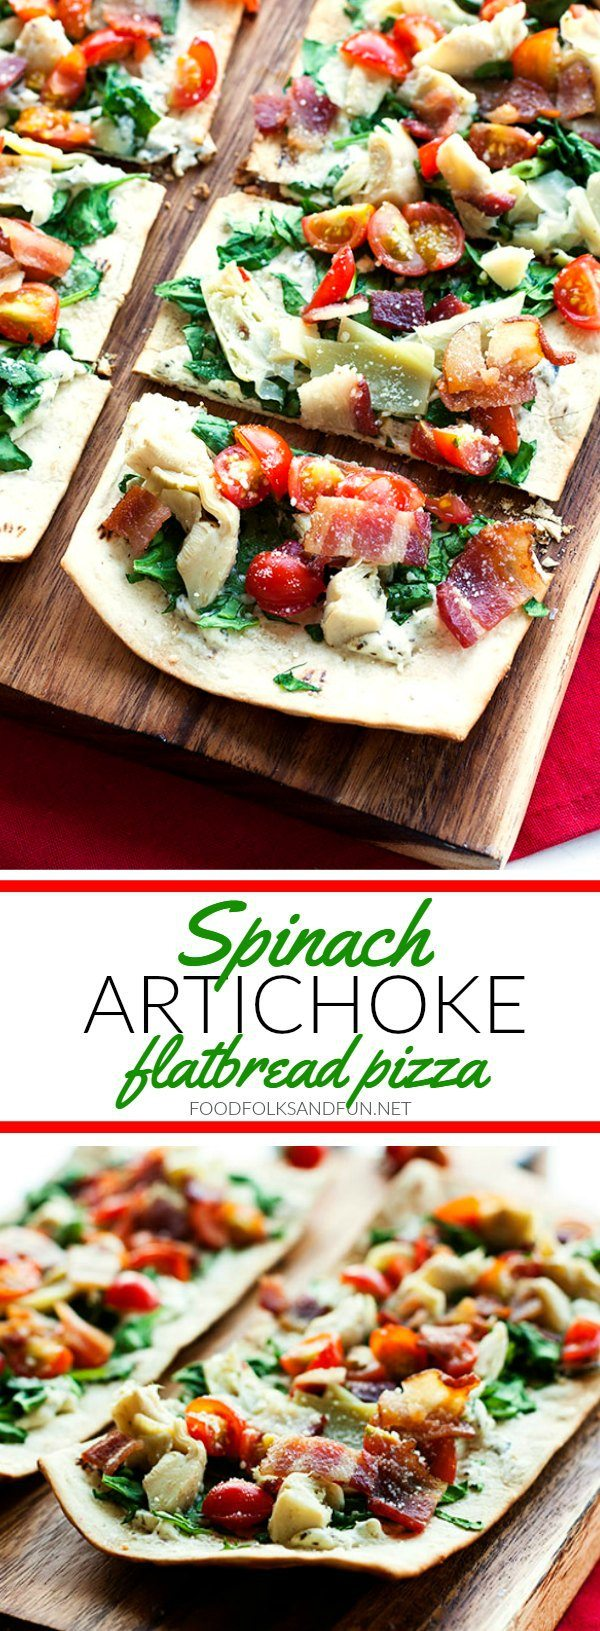 Grilled Spinach Artichoke Flatbread Pizza is a quick and easy dish for your next cookout. It's everything you love about the classic spinach artichoke dip but in a delicious flatbread pizza. Plus you can make this recipe in about 15 minutes!